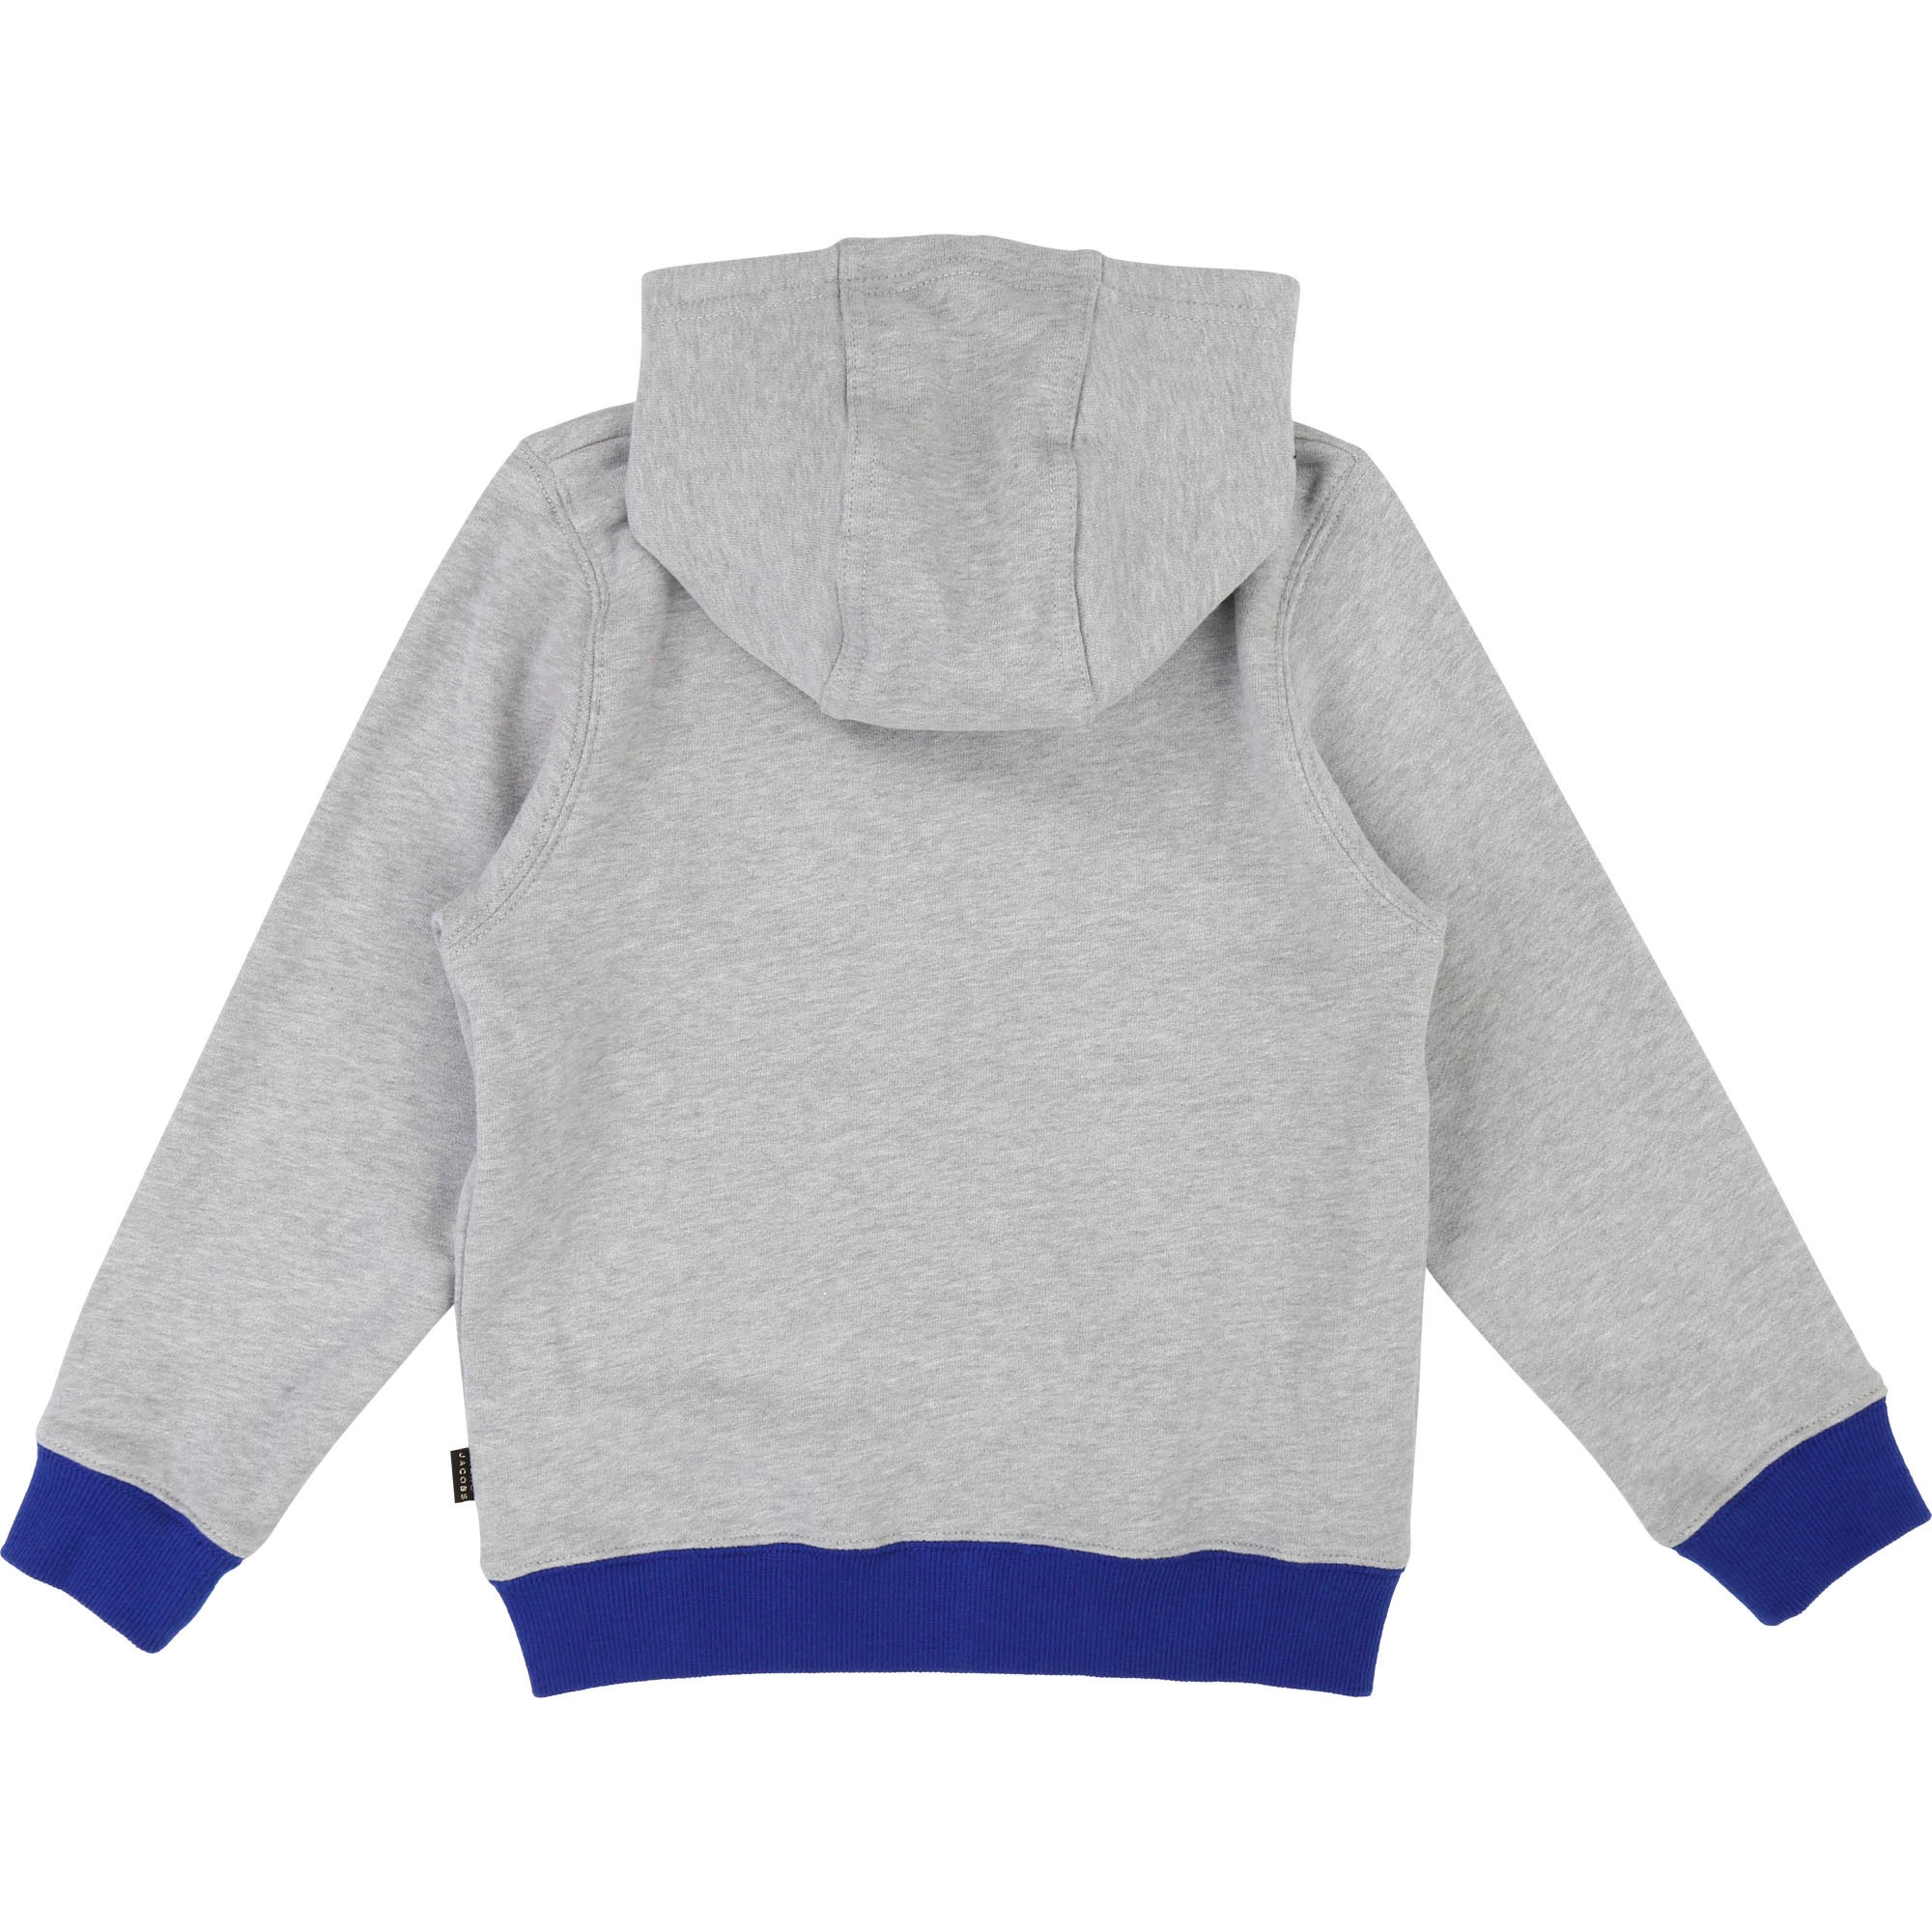 Casual cardigan THE MARC JACOBS for BOY